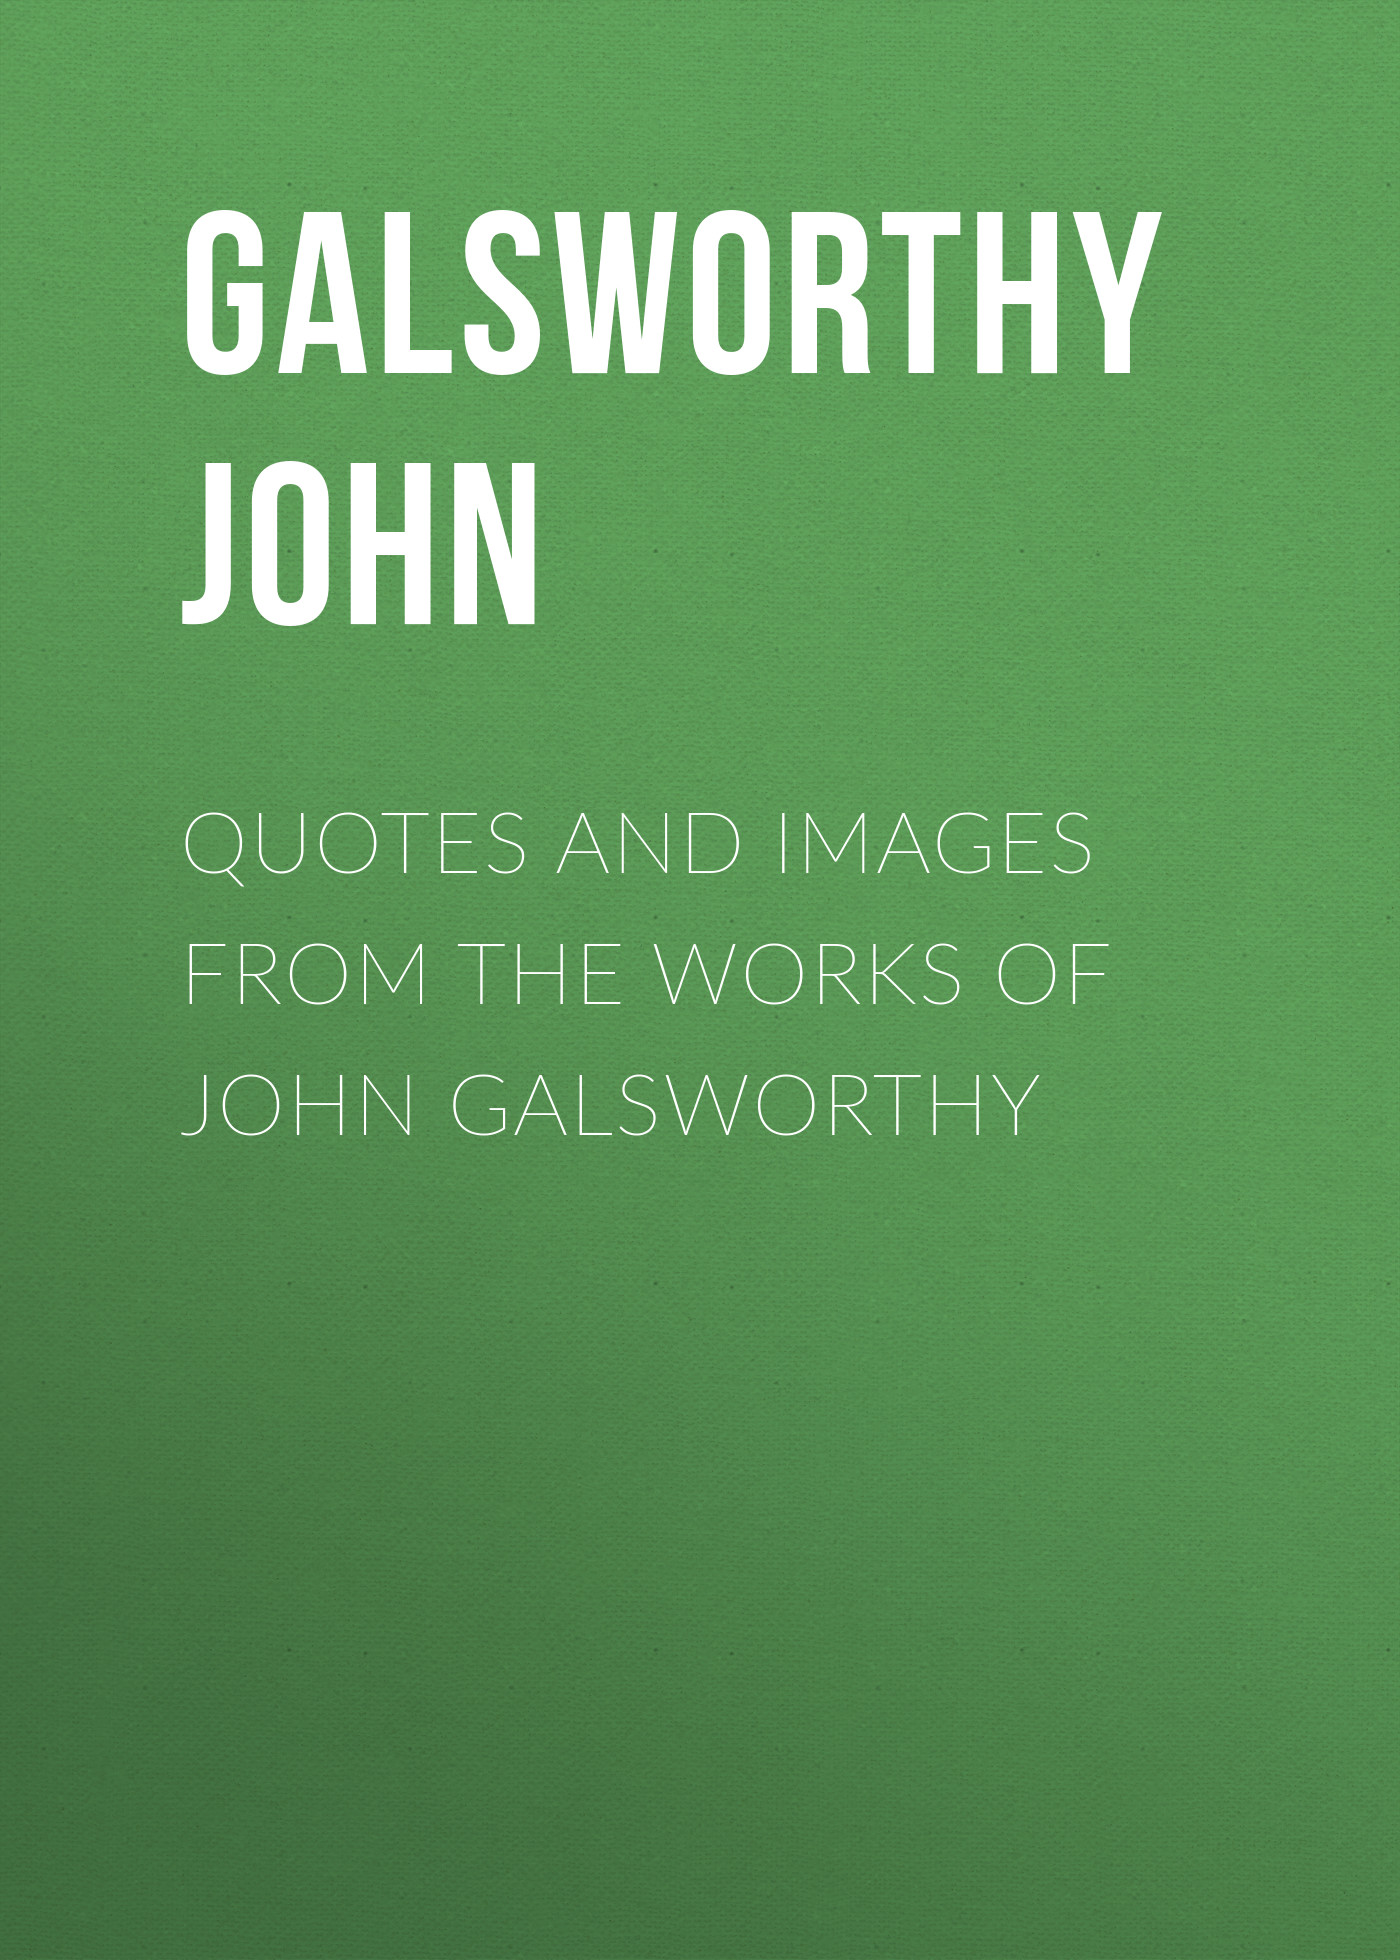 лучшая цена Galsworthy John Quotes and Images From the Works of John Galsworthy